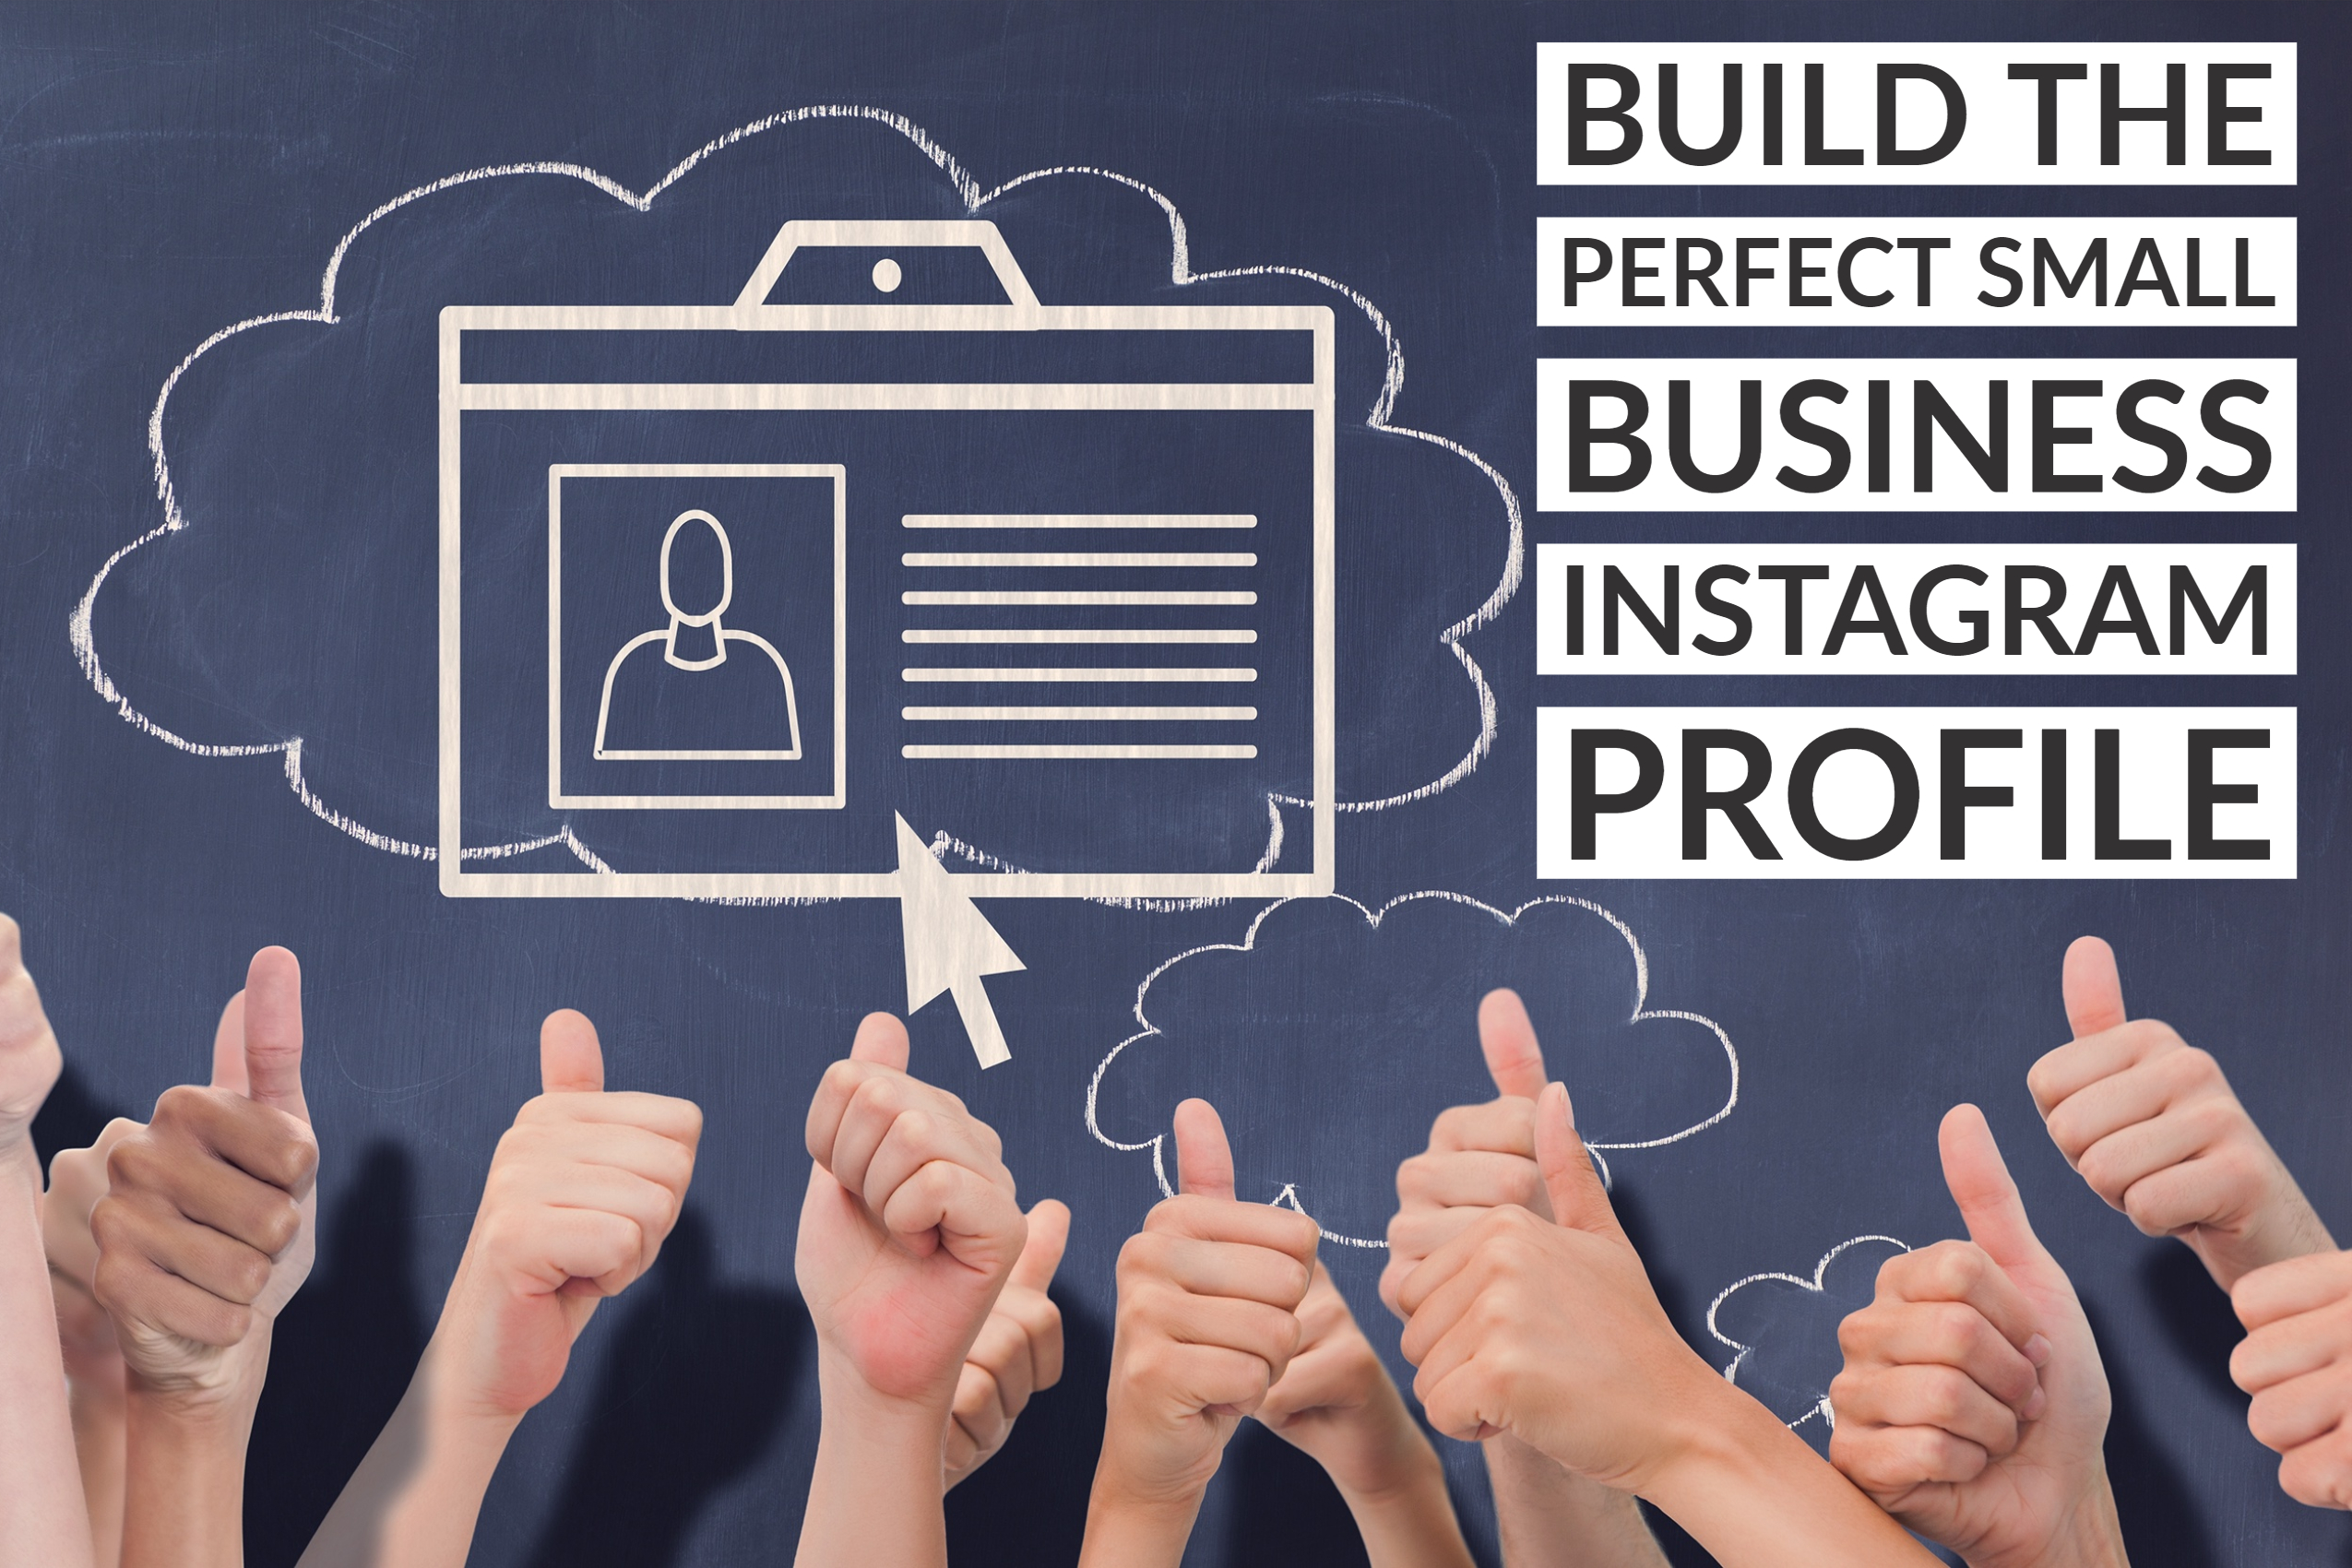 Build The Perfect Small Business Instagram Profile